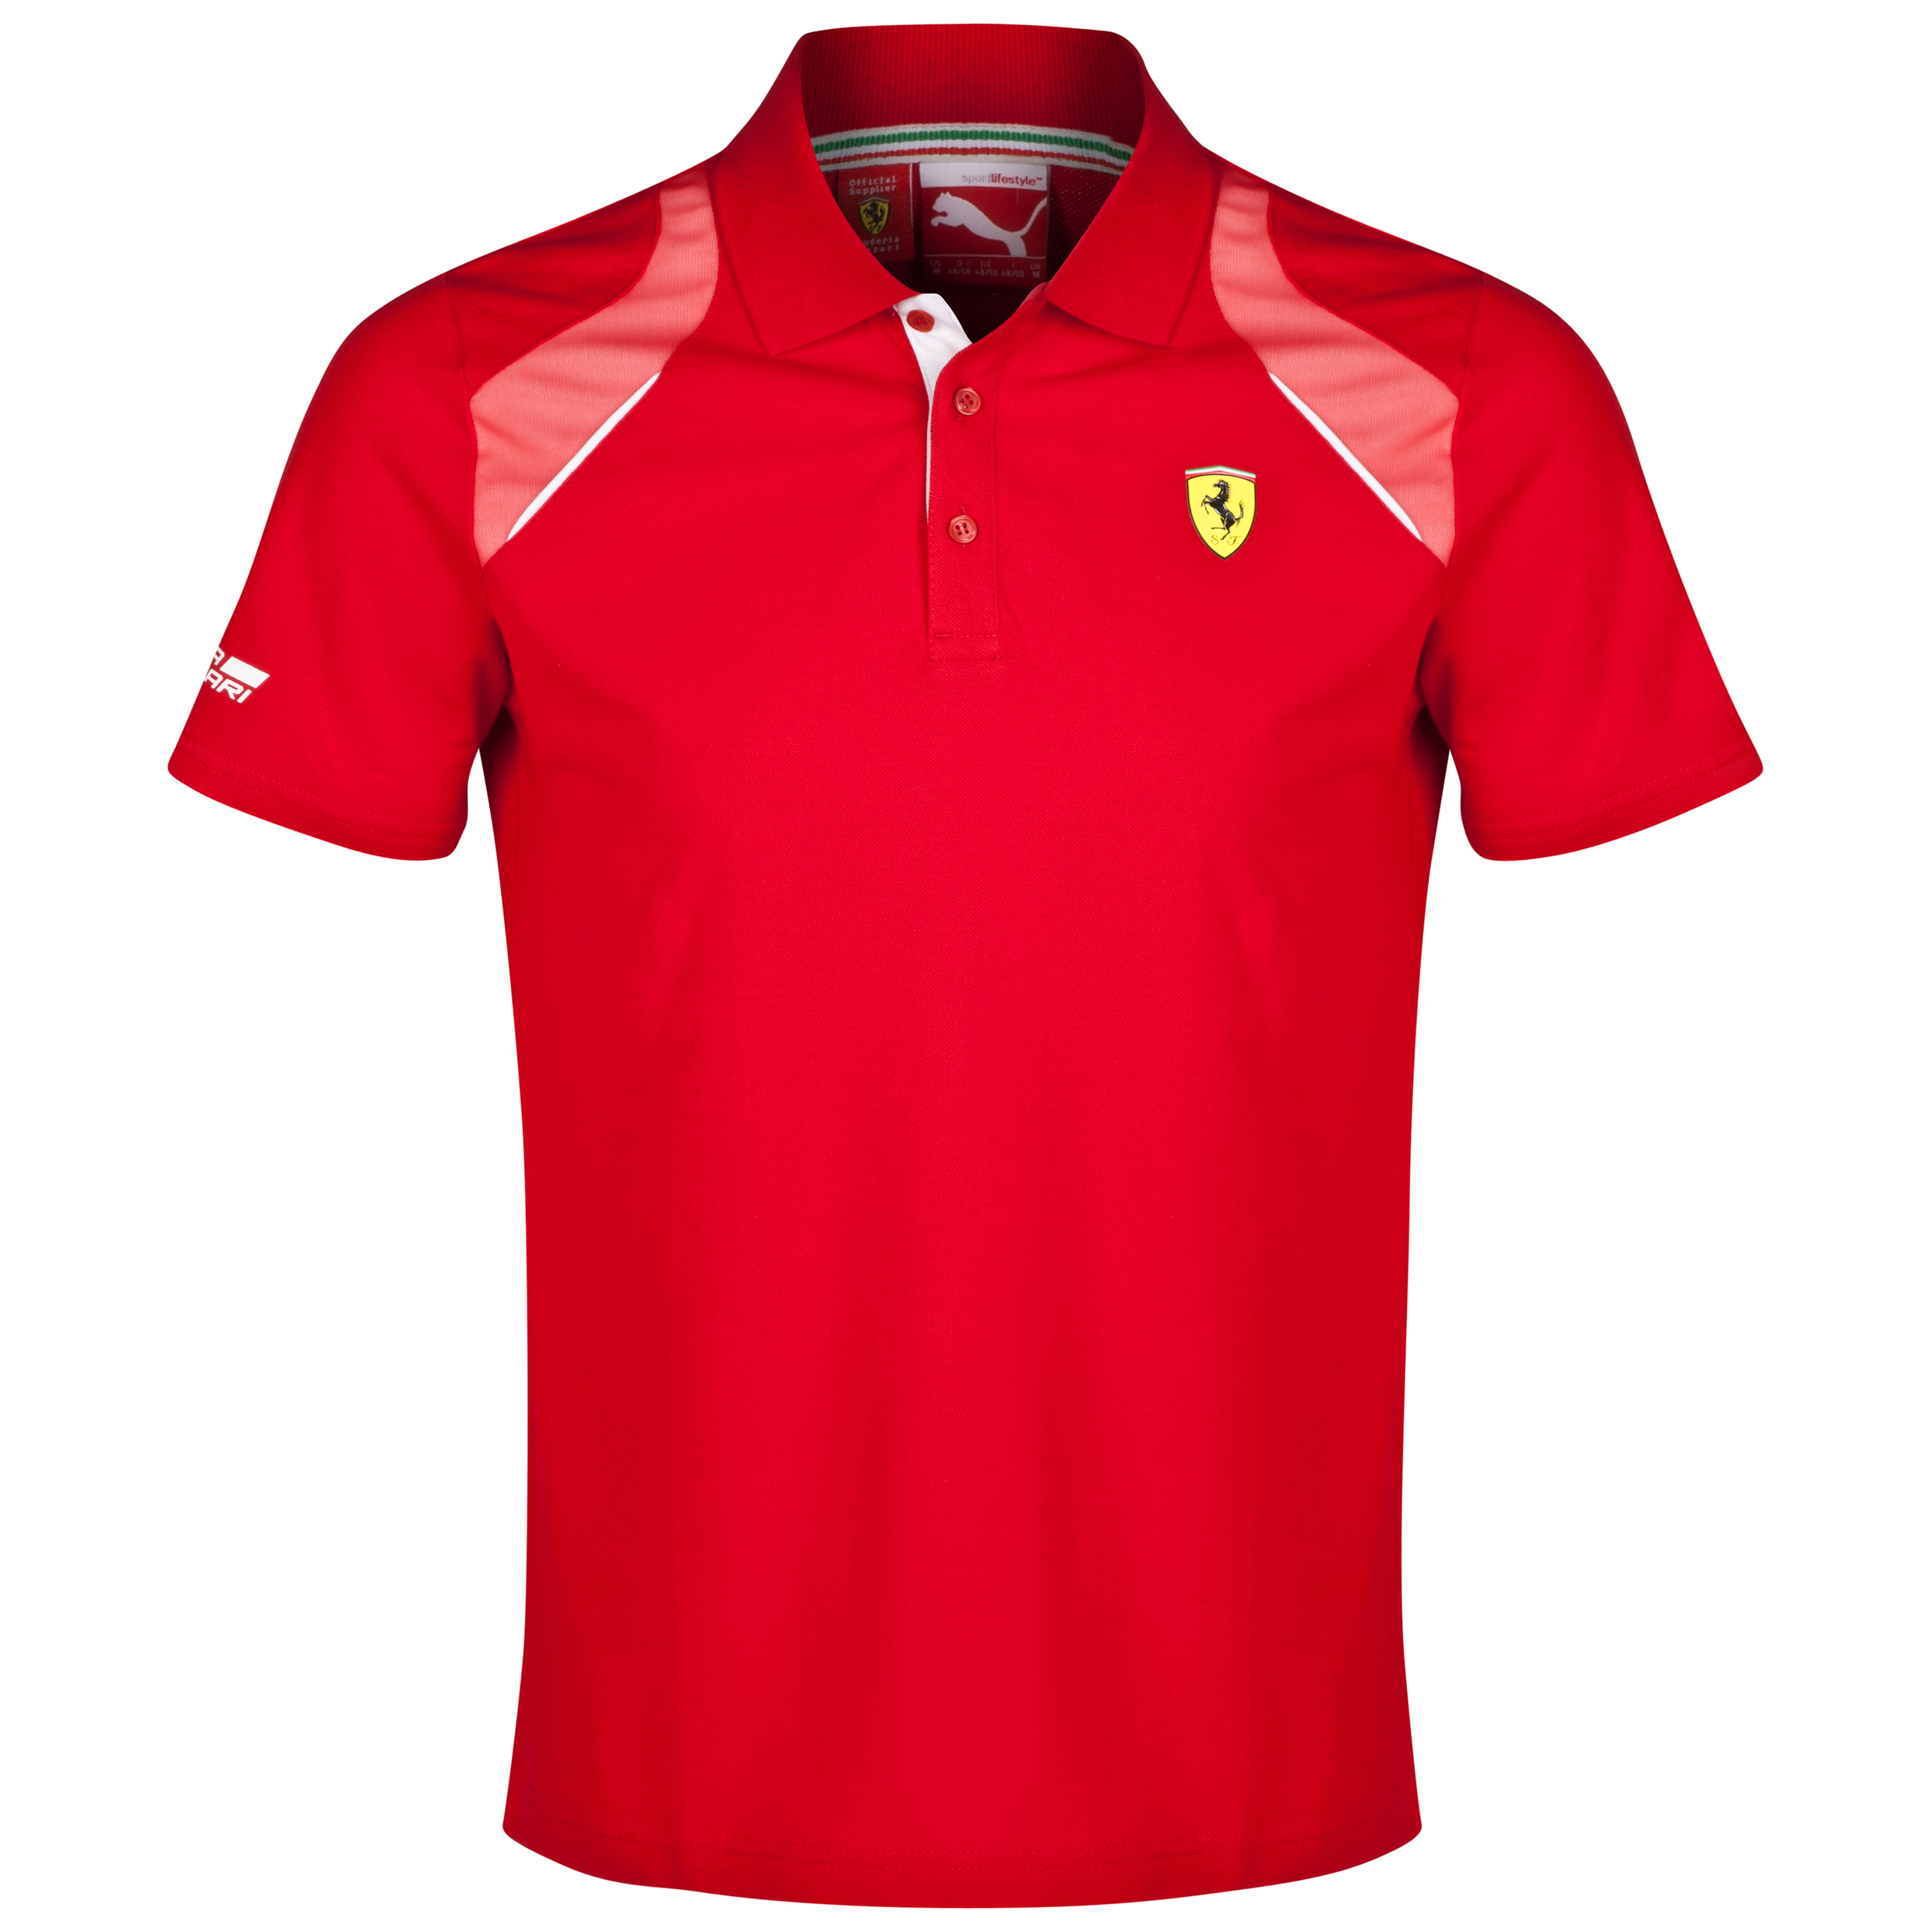 Scuderia Ferrari Polo Red